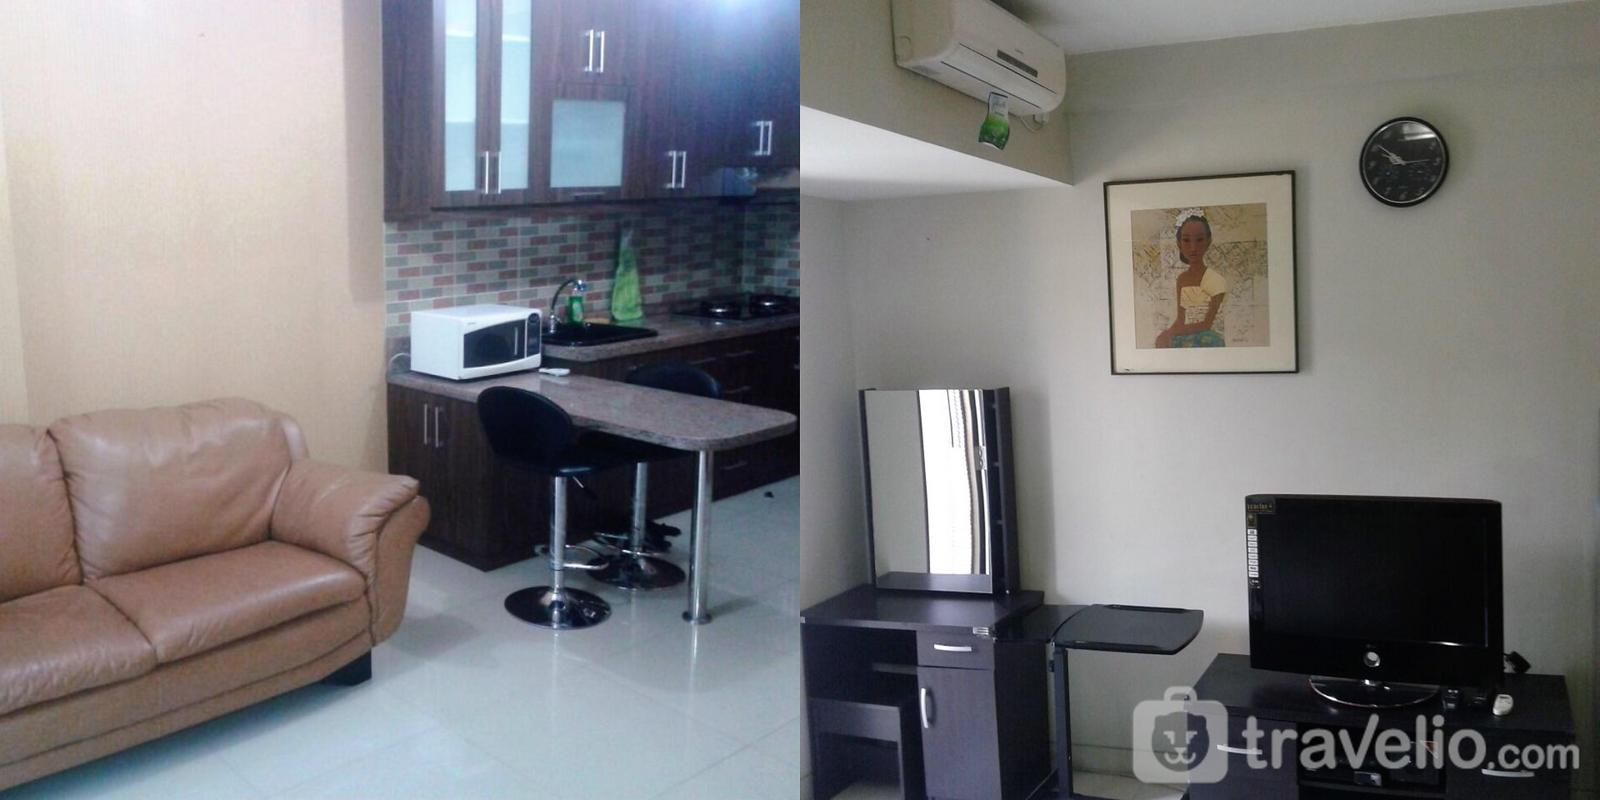 Tamansari Sudirman - Studio Room 2 with Full Furnished 3rd @ Apartment Tamansari Sudirman By PT. Abdi Properti Indonesia